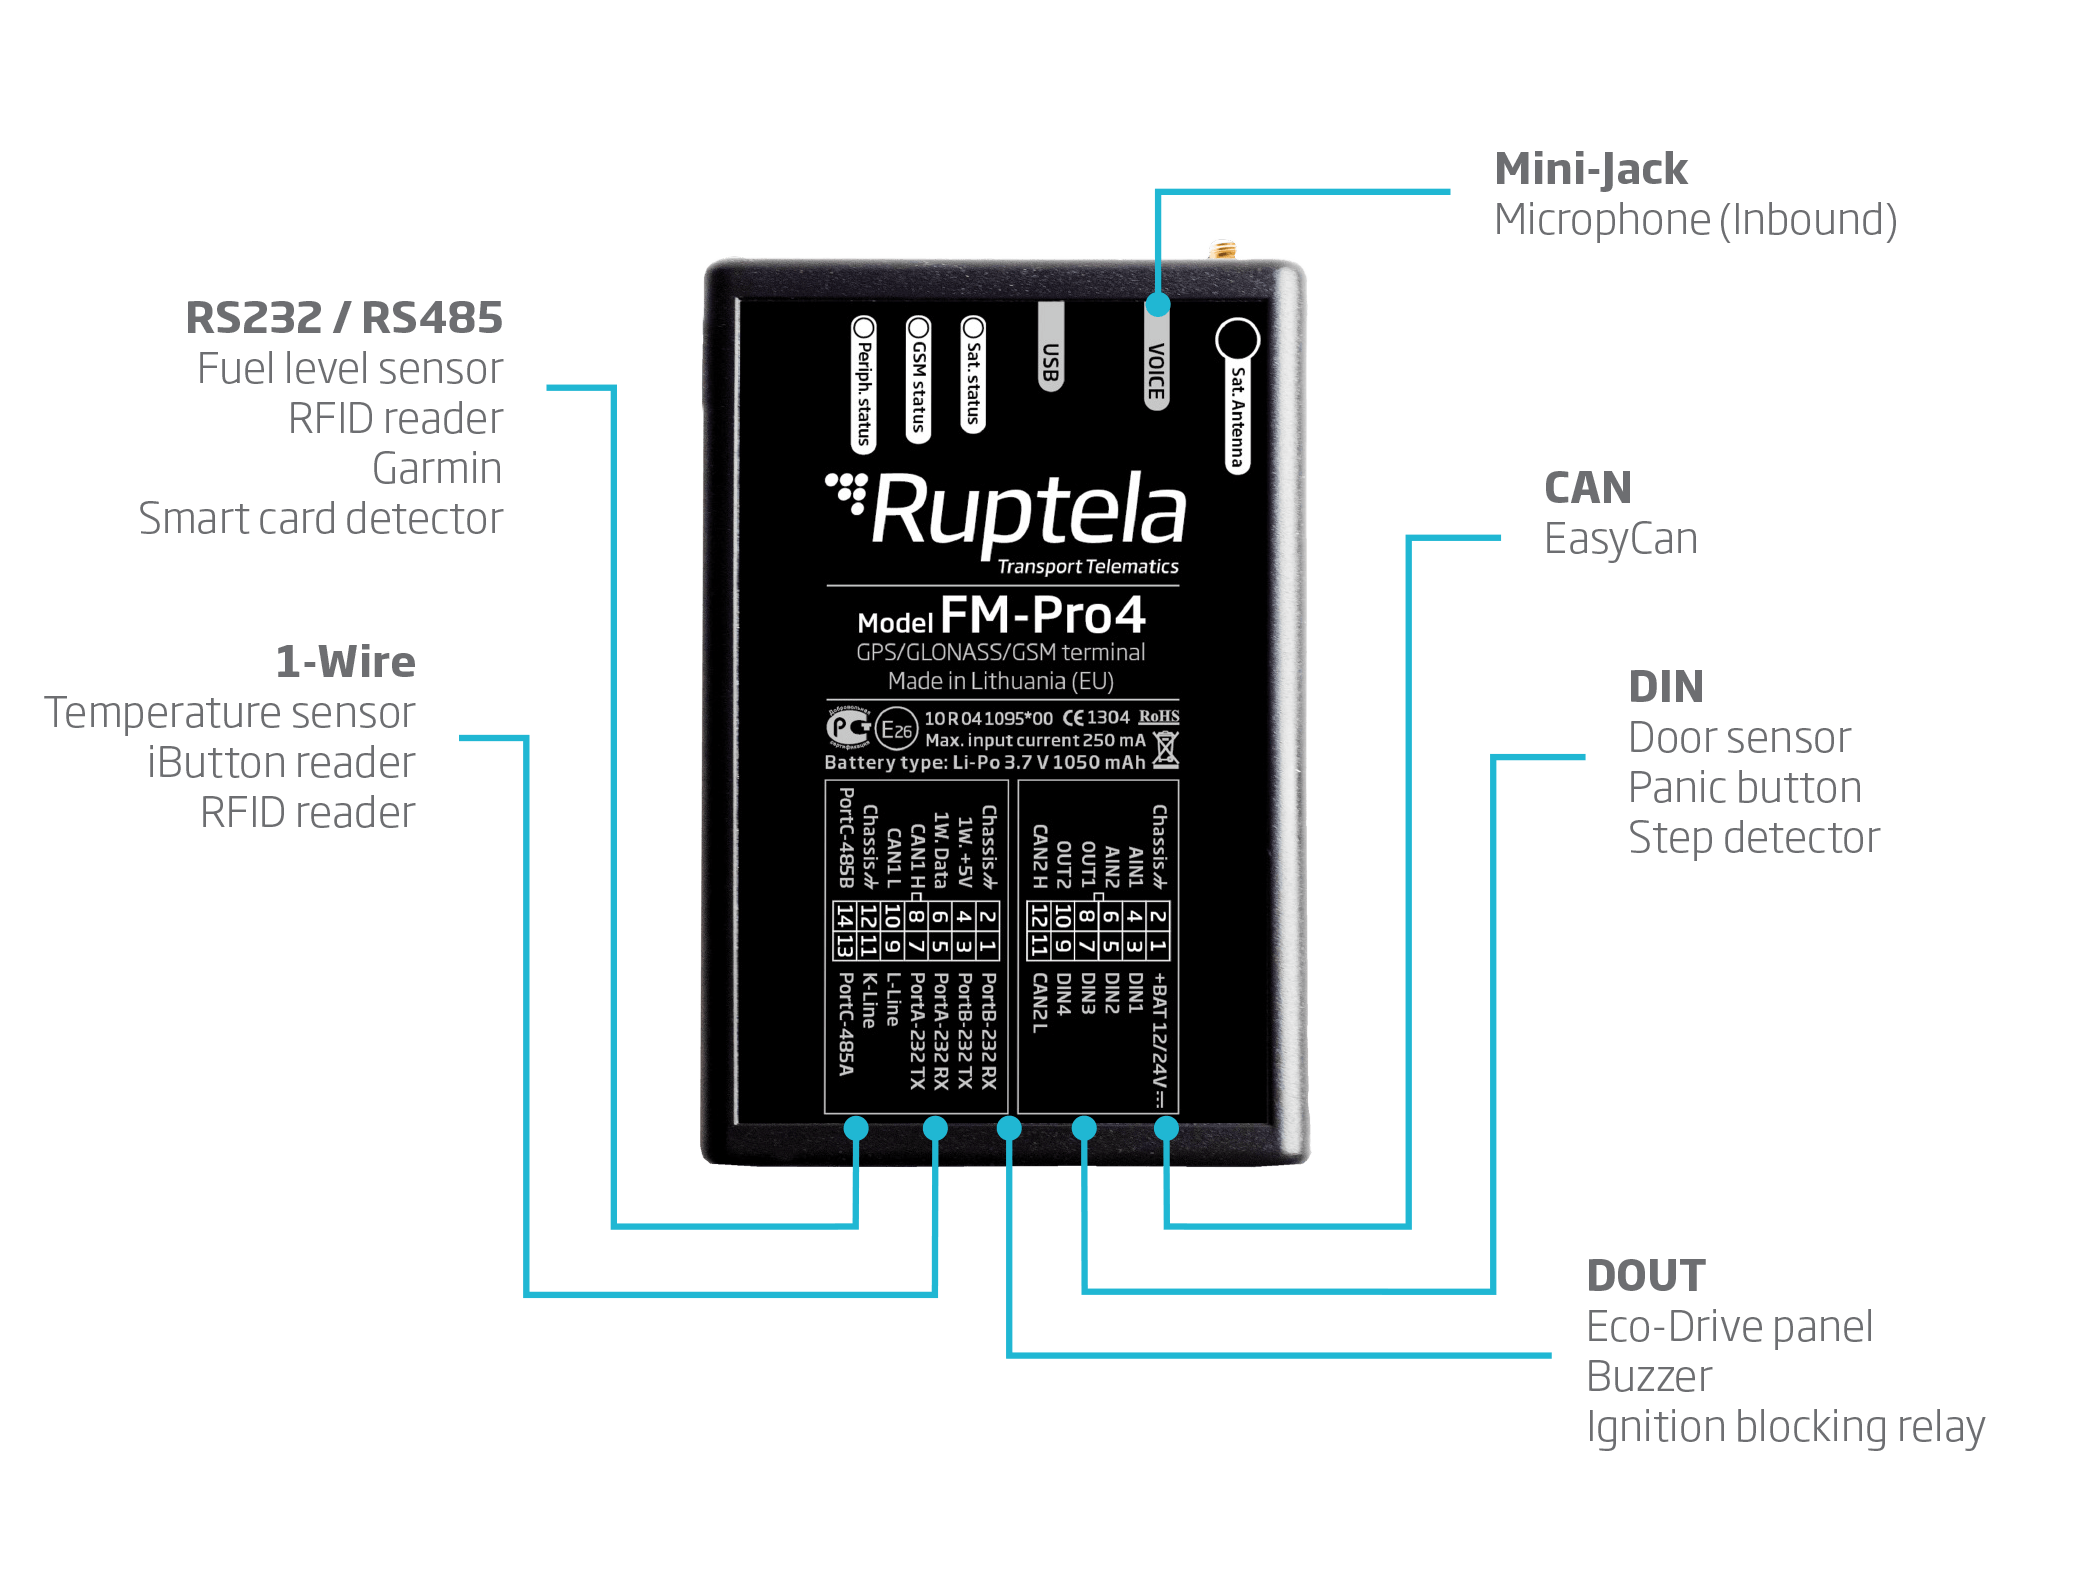 FM-Pro4 GPS tracking device for heavy vehicles - Ruptela